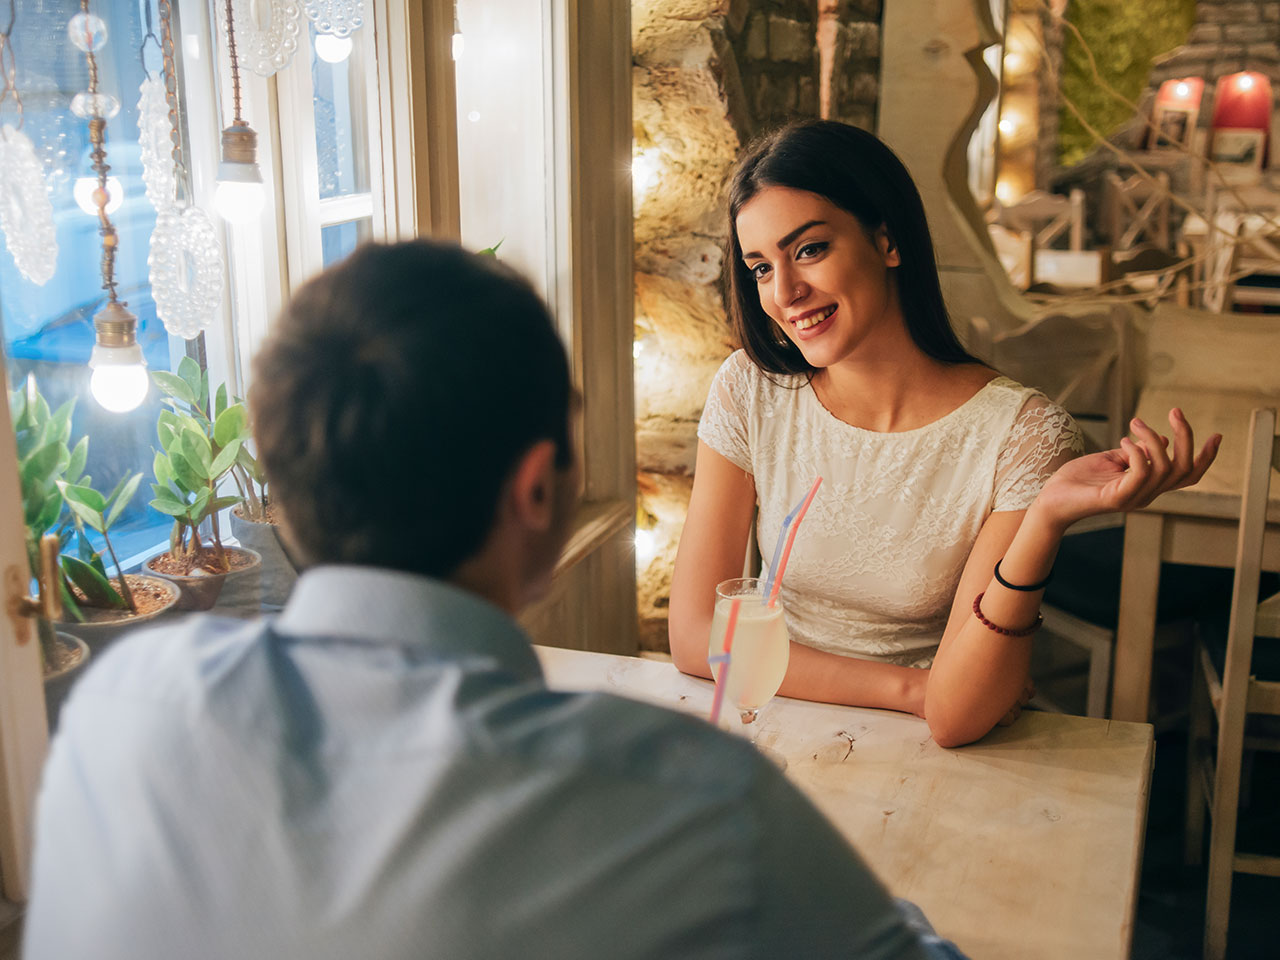 Body language signs of attraction sexual 10 Signs